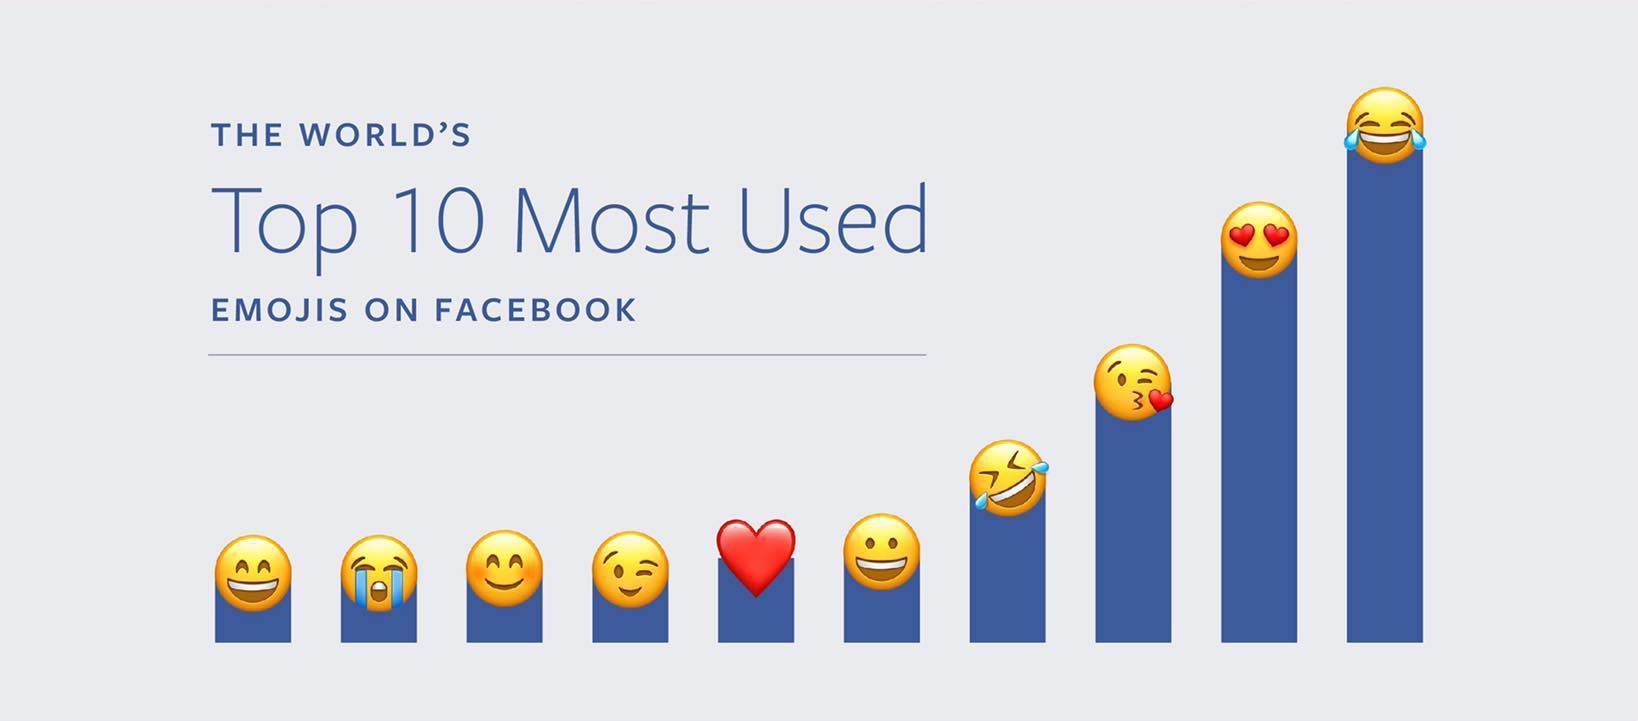 Скриншот Марка Цукерберга's Emojis on Facebook Infographic.